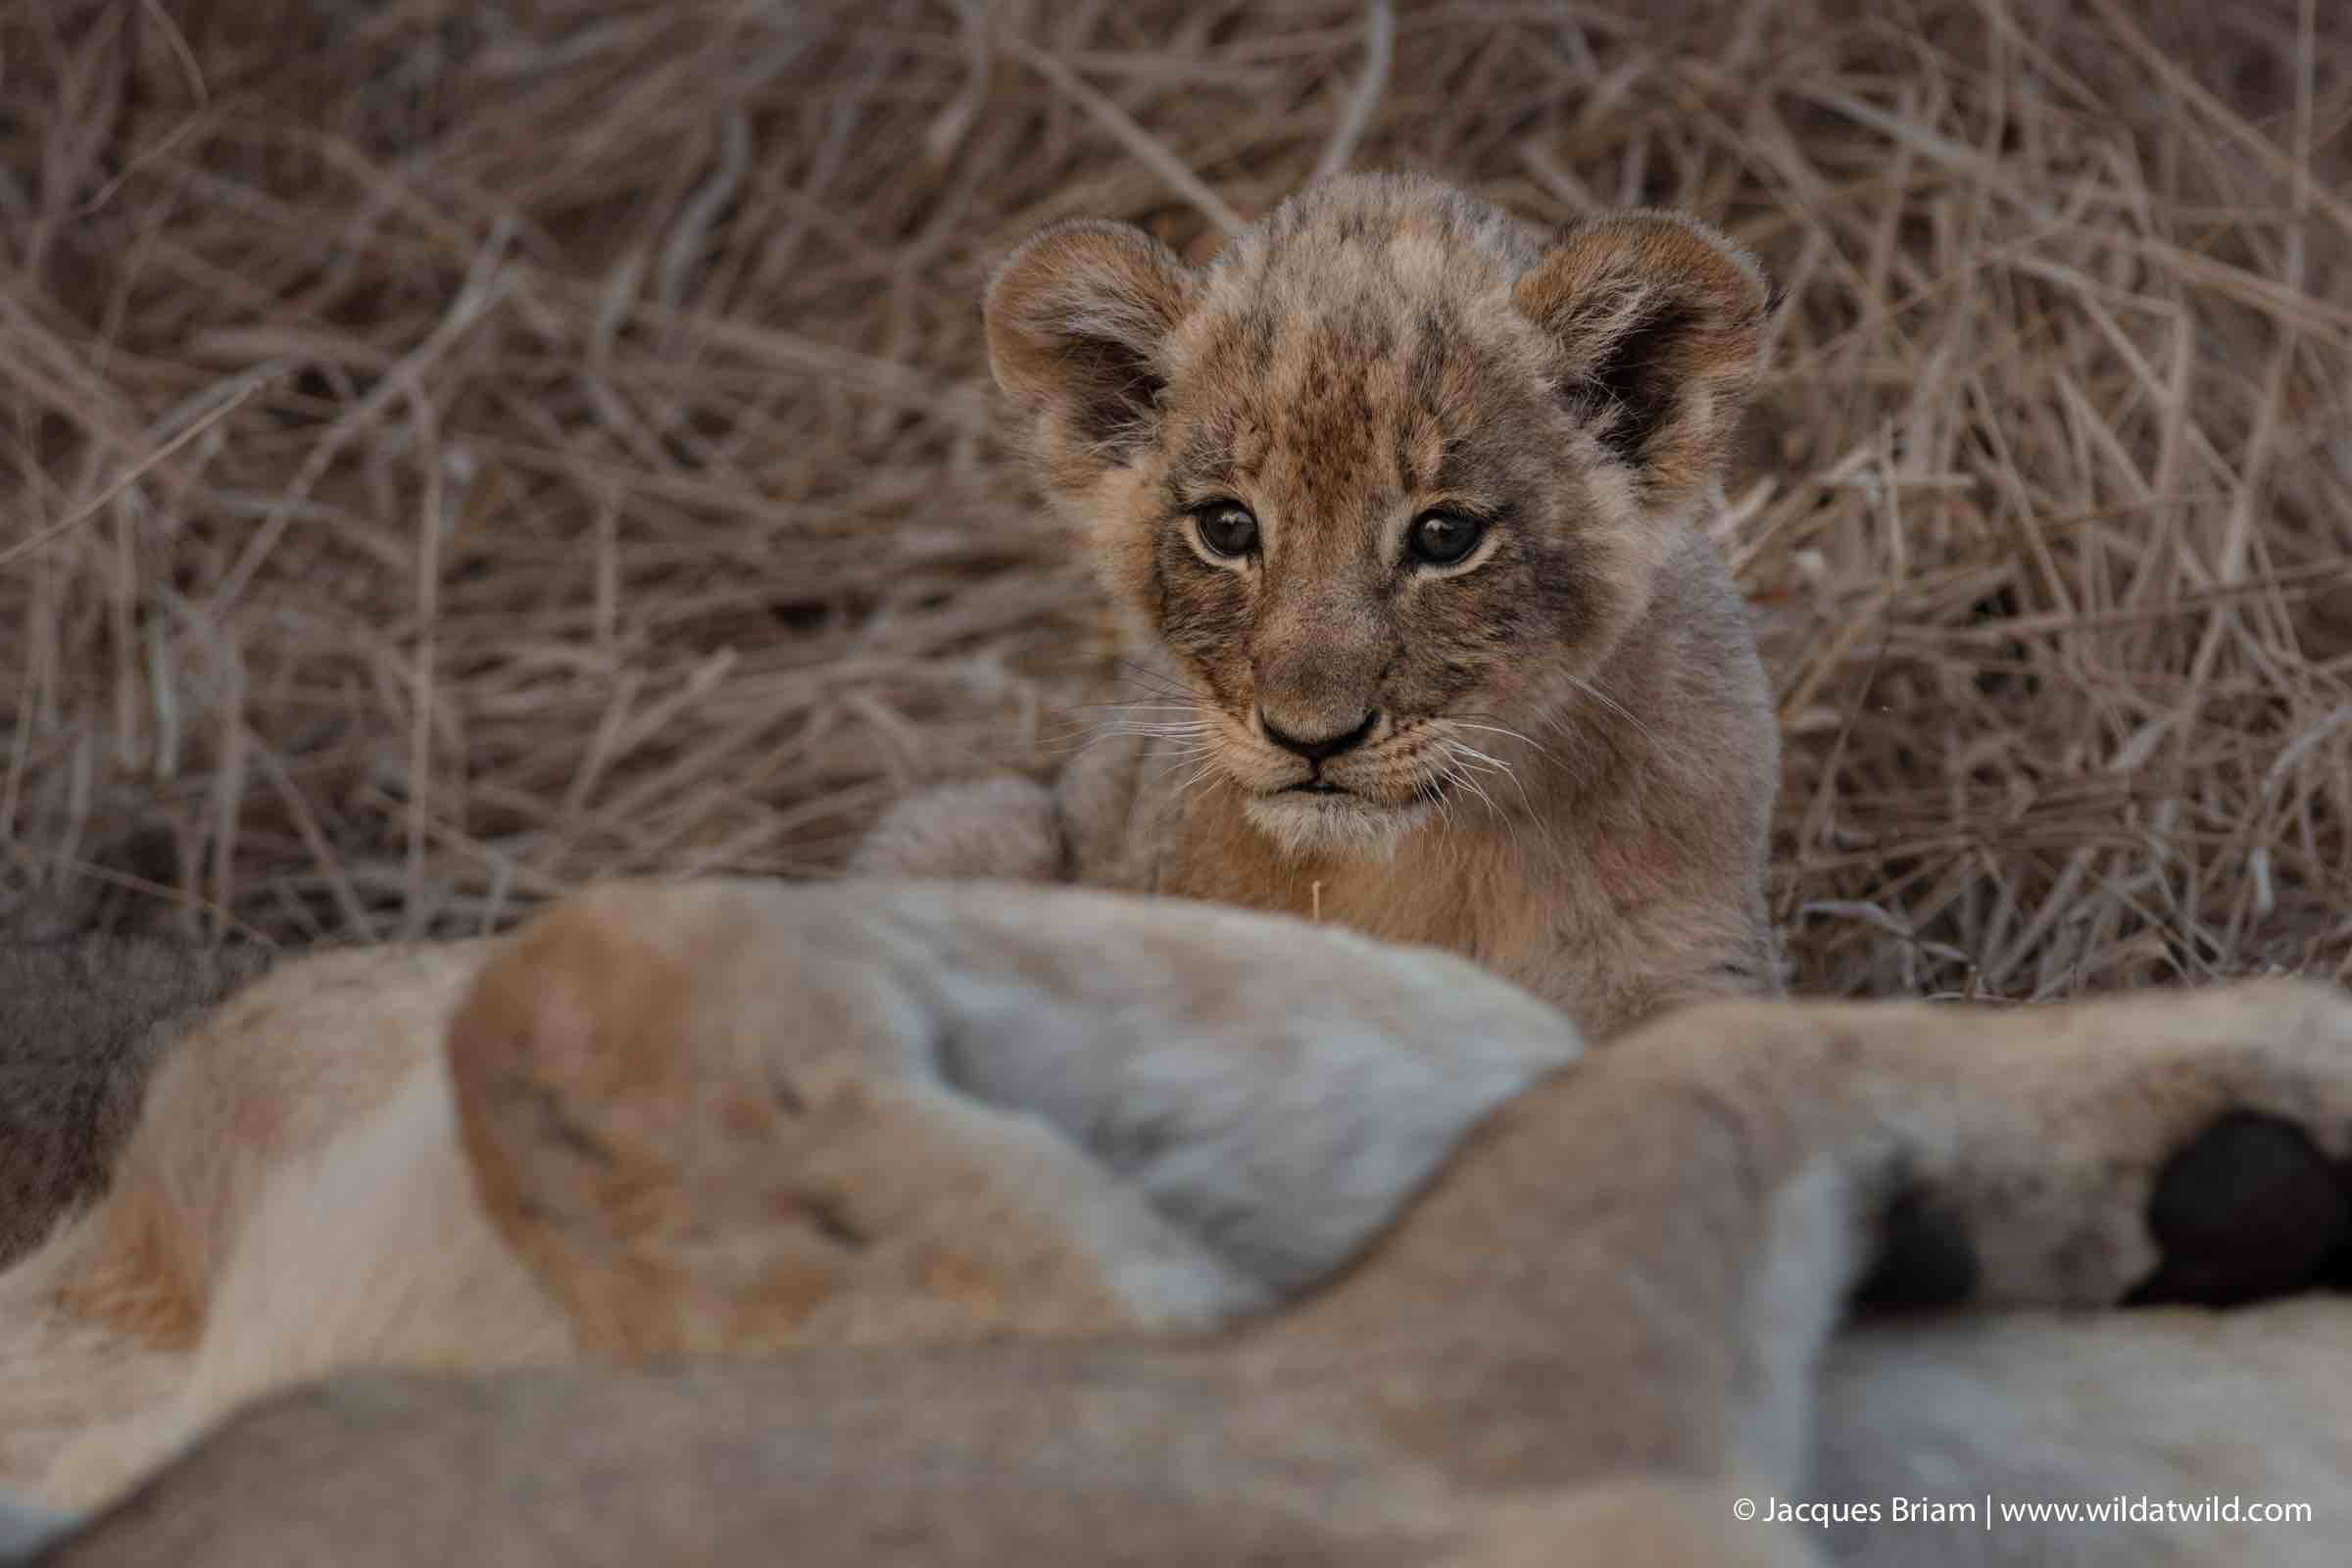 One of the newborn Mountain Pride cubs stares at us while hiding behind its mother.